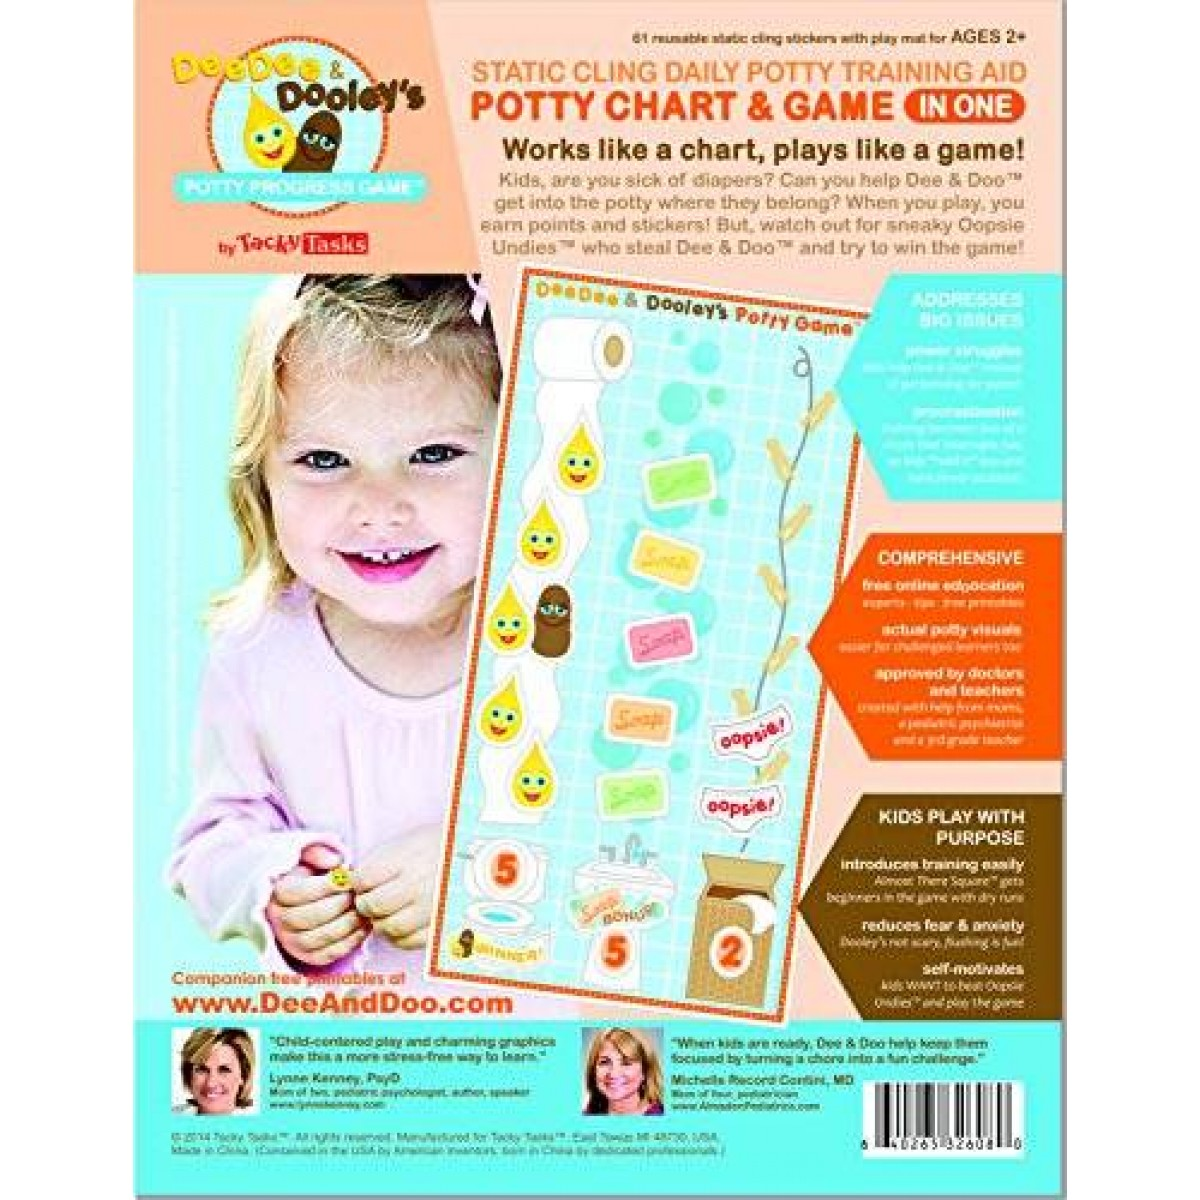 tasks deedee and dooley s potty progress game static cling daily tacky tasks deedee and dooley s potty progress game static cling daily potty training aid chart and game